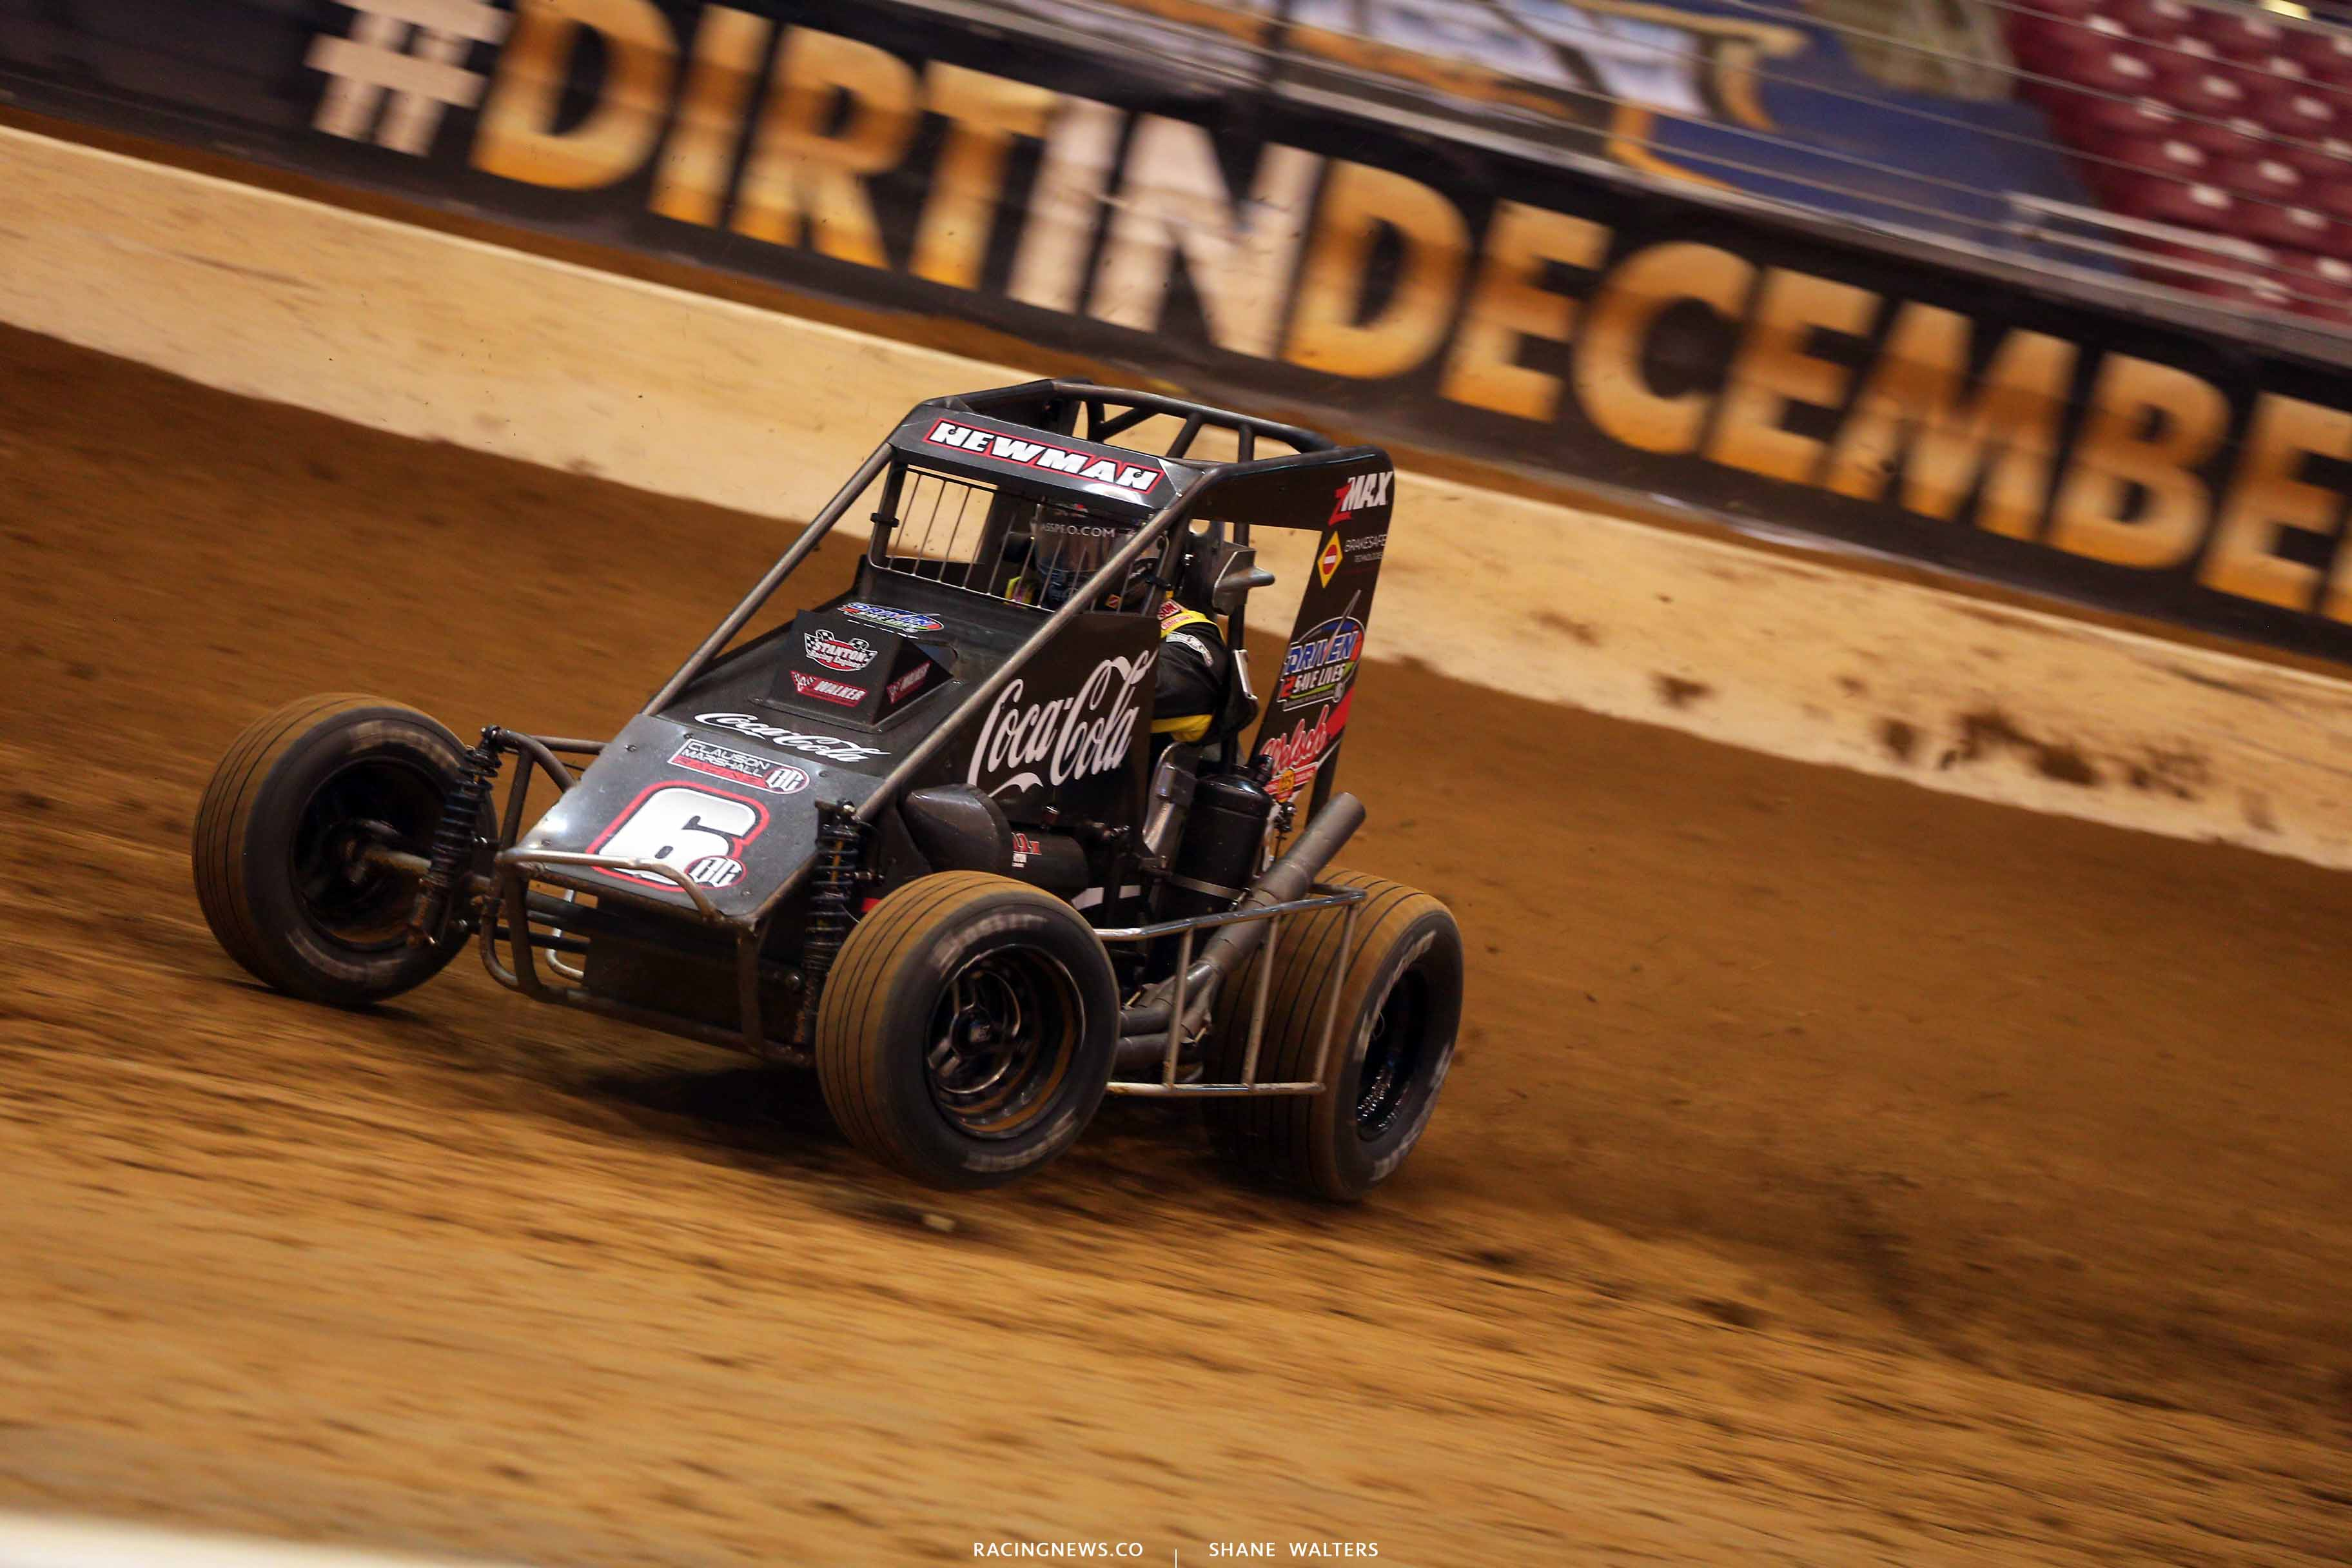 Ryan Newman comments on his return to dirt racing; Wants to run Chili Bowl Nationals